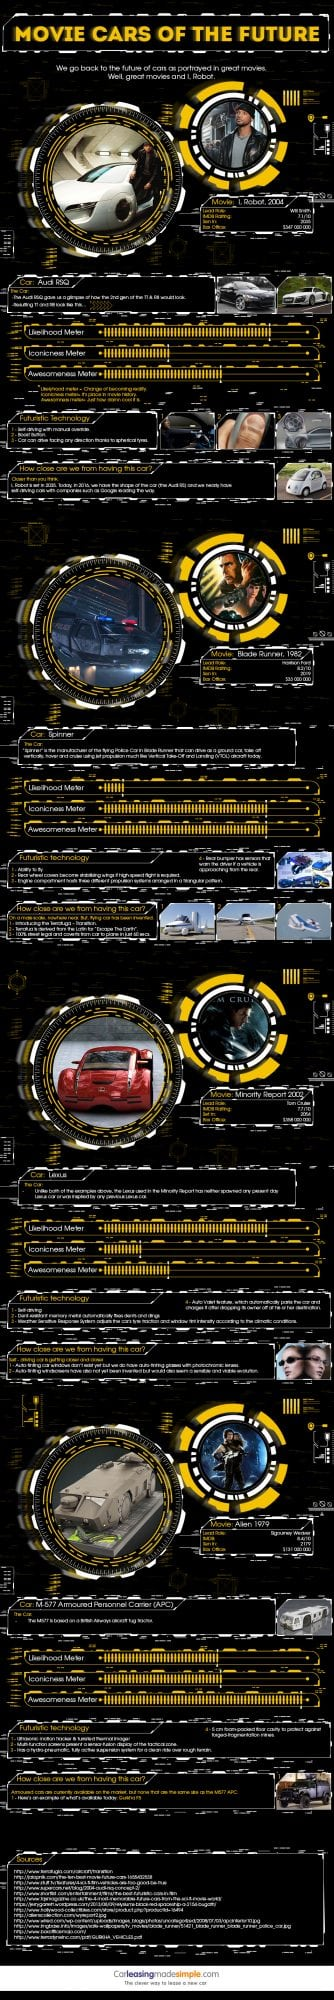 movie-cars-of-the-future